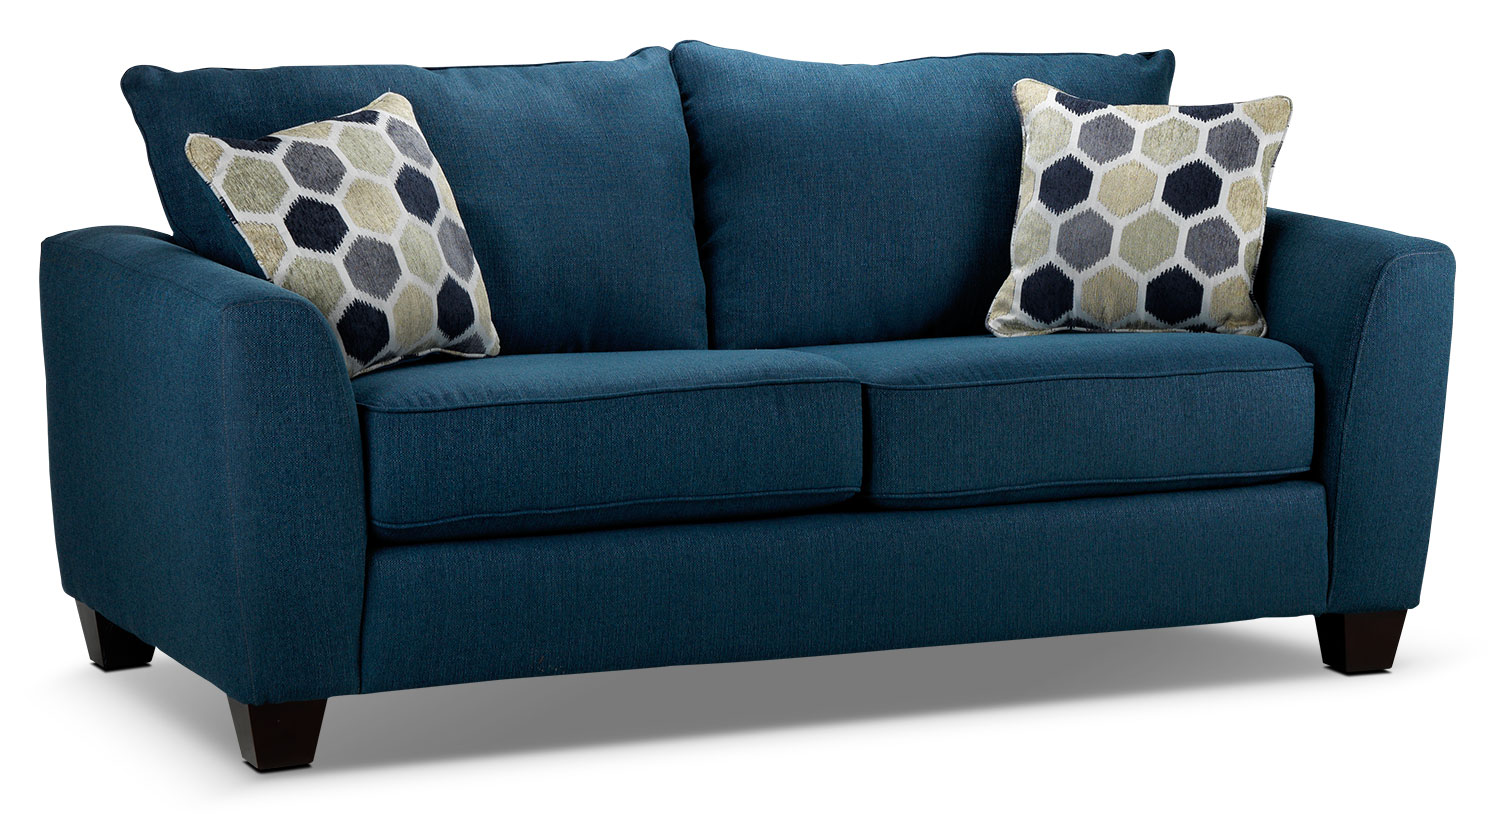 Heritage Loveseat - Navy